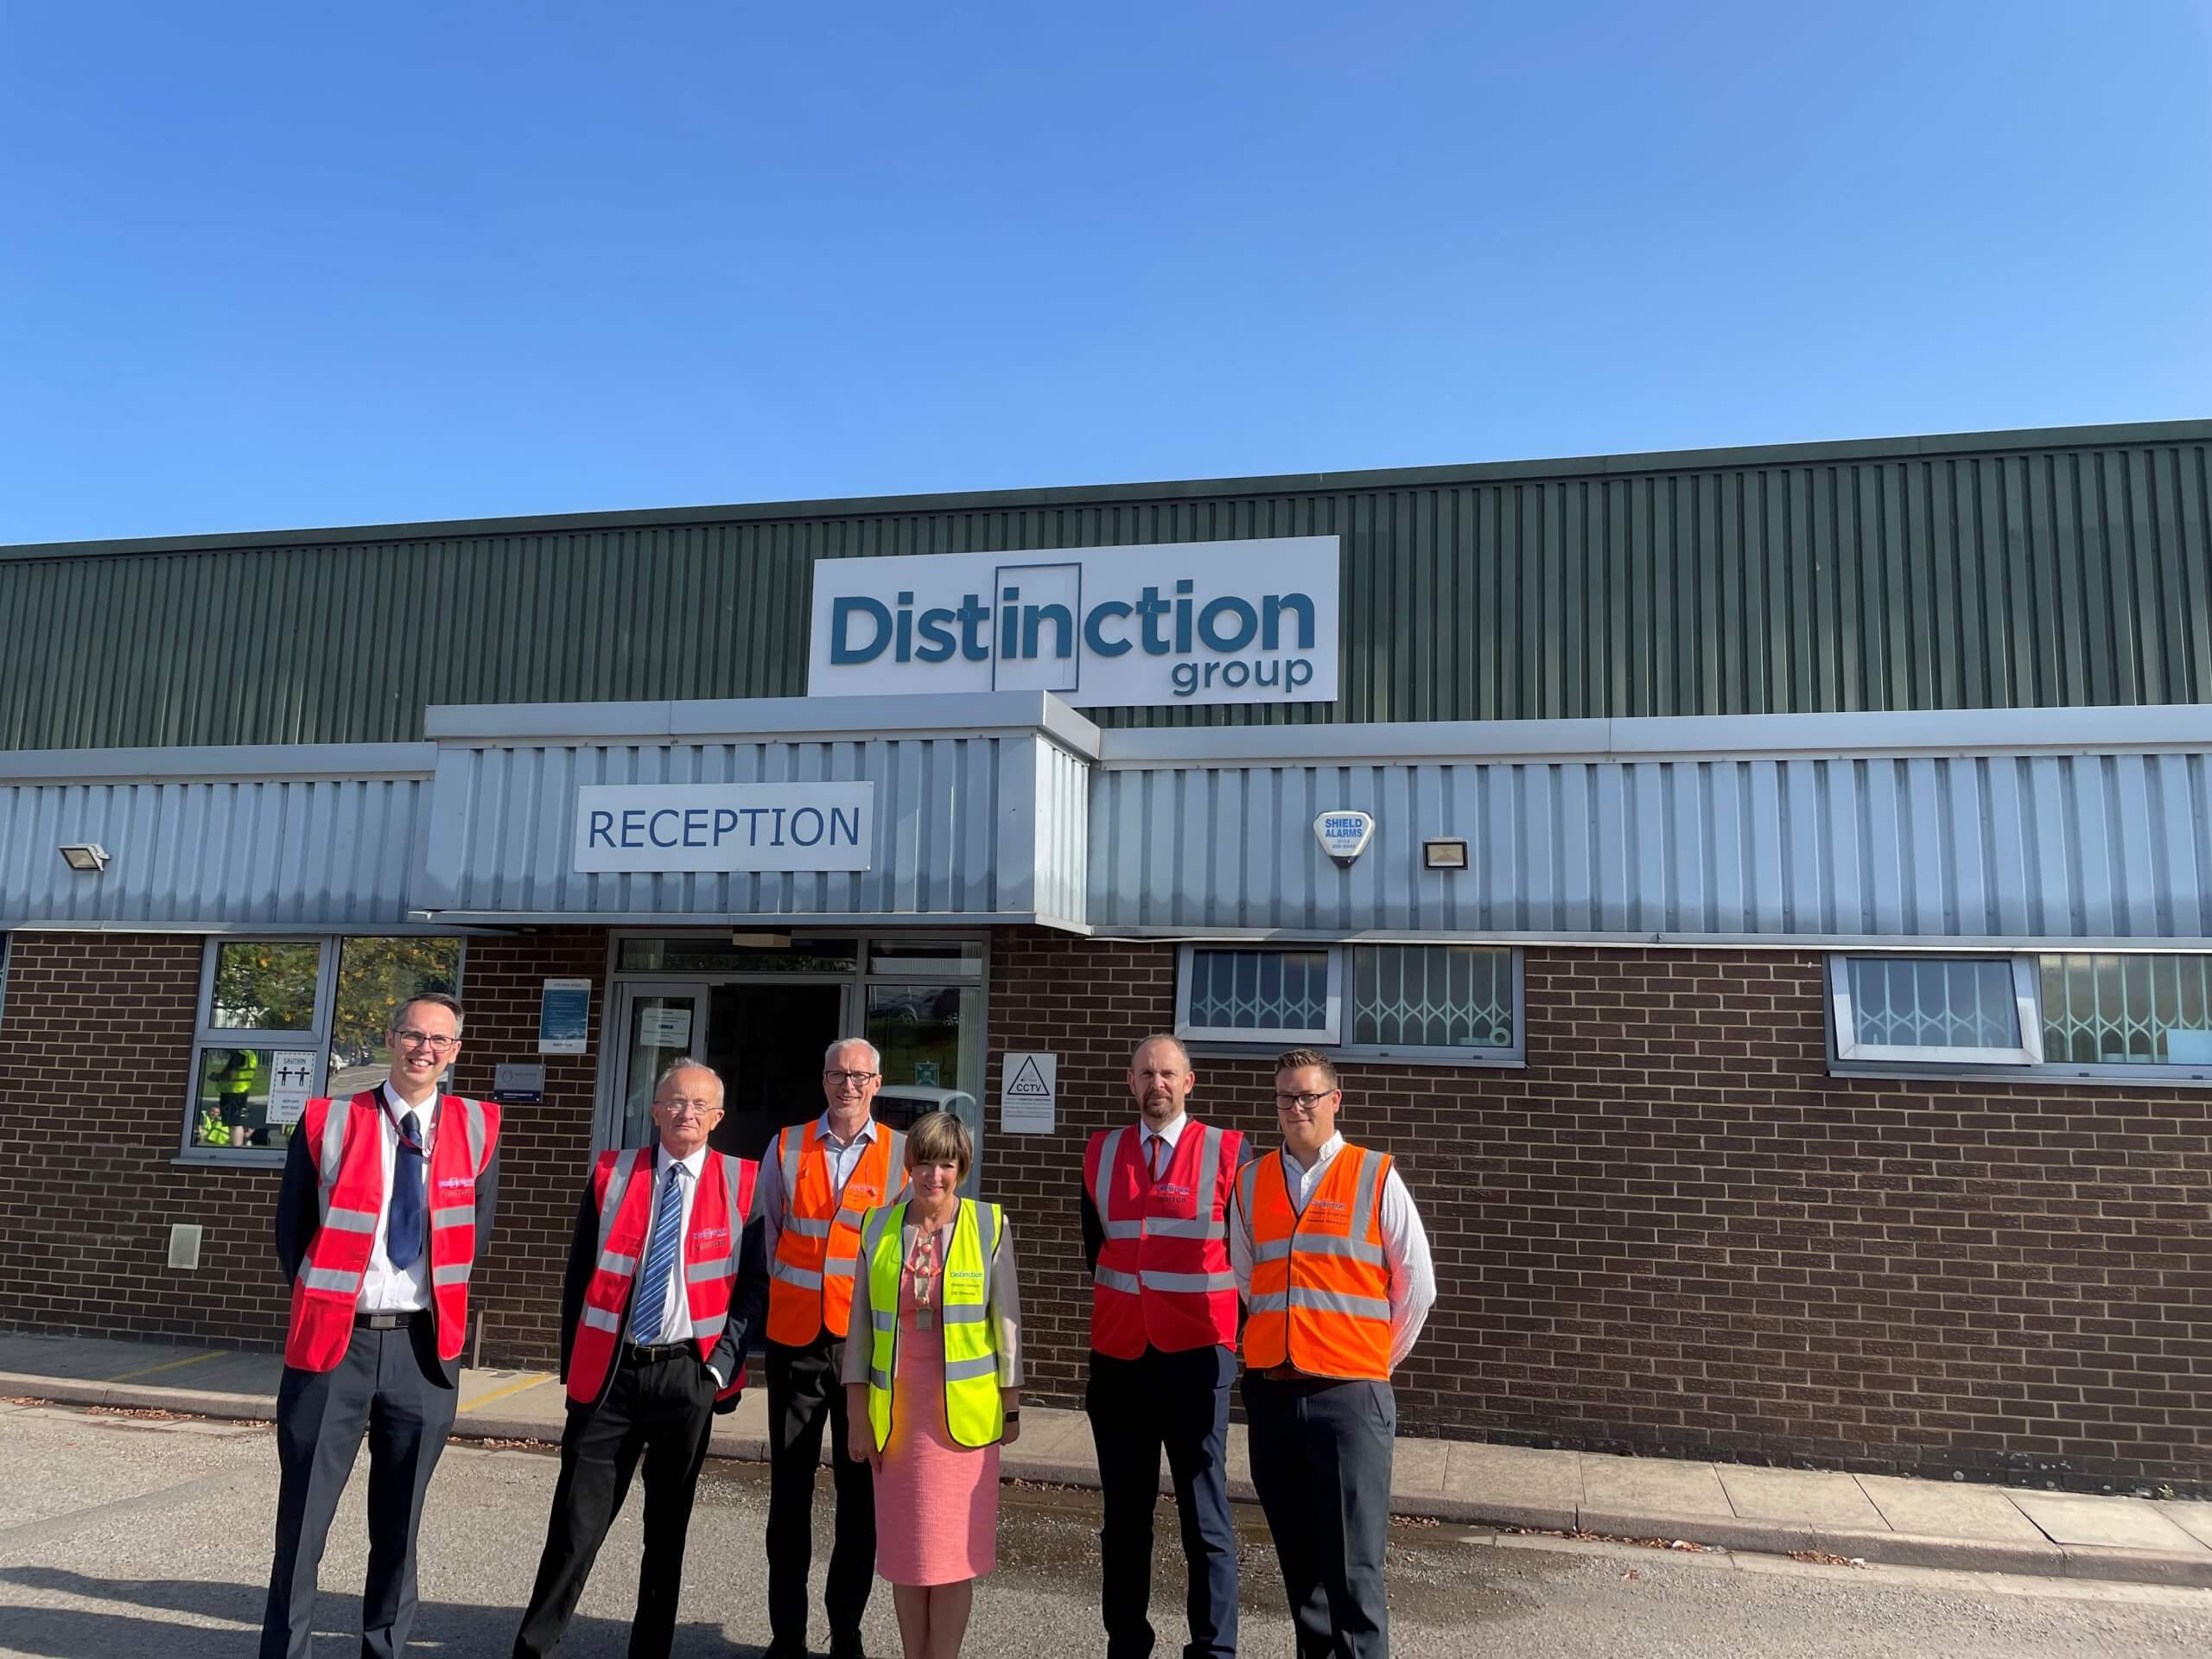 Barnsley's Distinction Doors moves from warehousing to manufacturing with creation of over 40 jobs in the last three years.